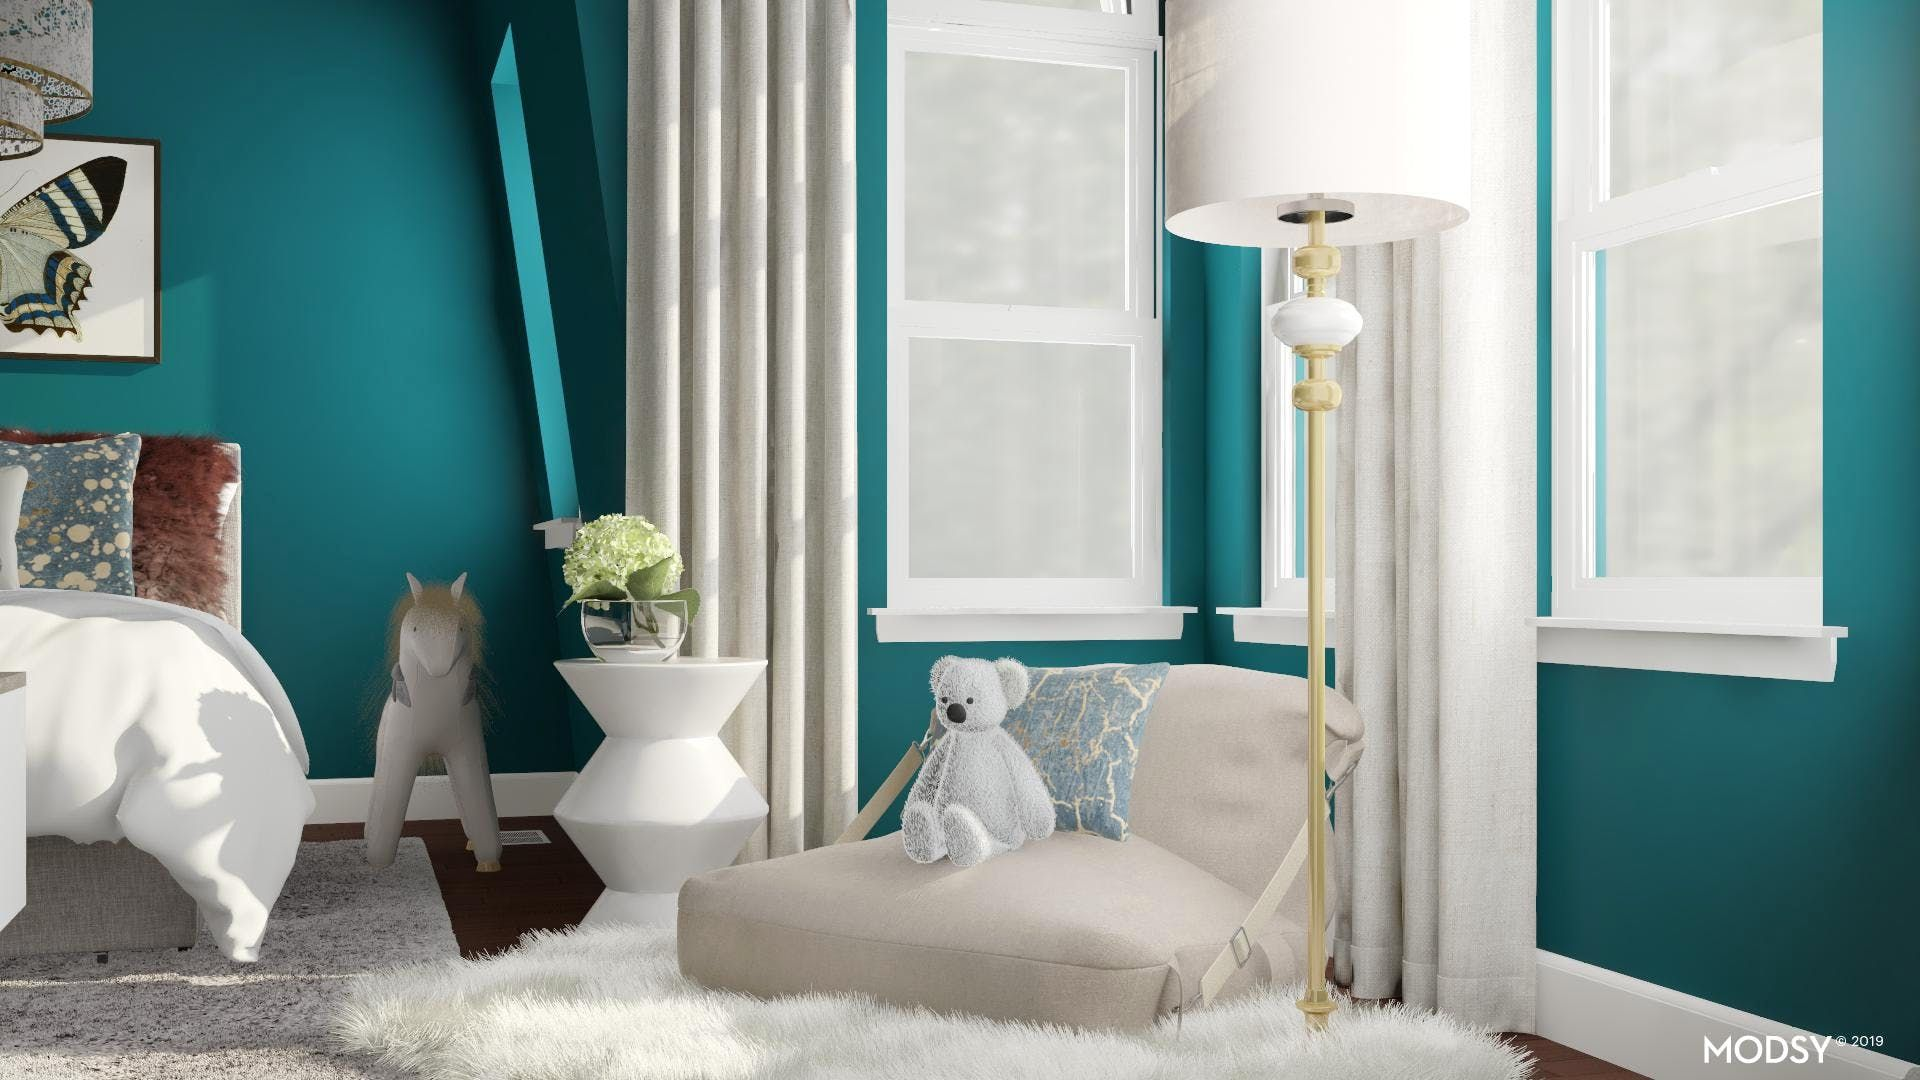 Design Ideas And Styles From Modsy Designers In 2020 Kids Room Design Modern White Living Room Room Design #teal #and #burgundy #living #room